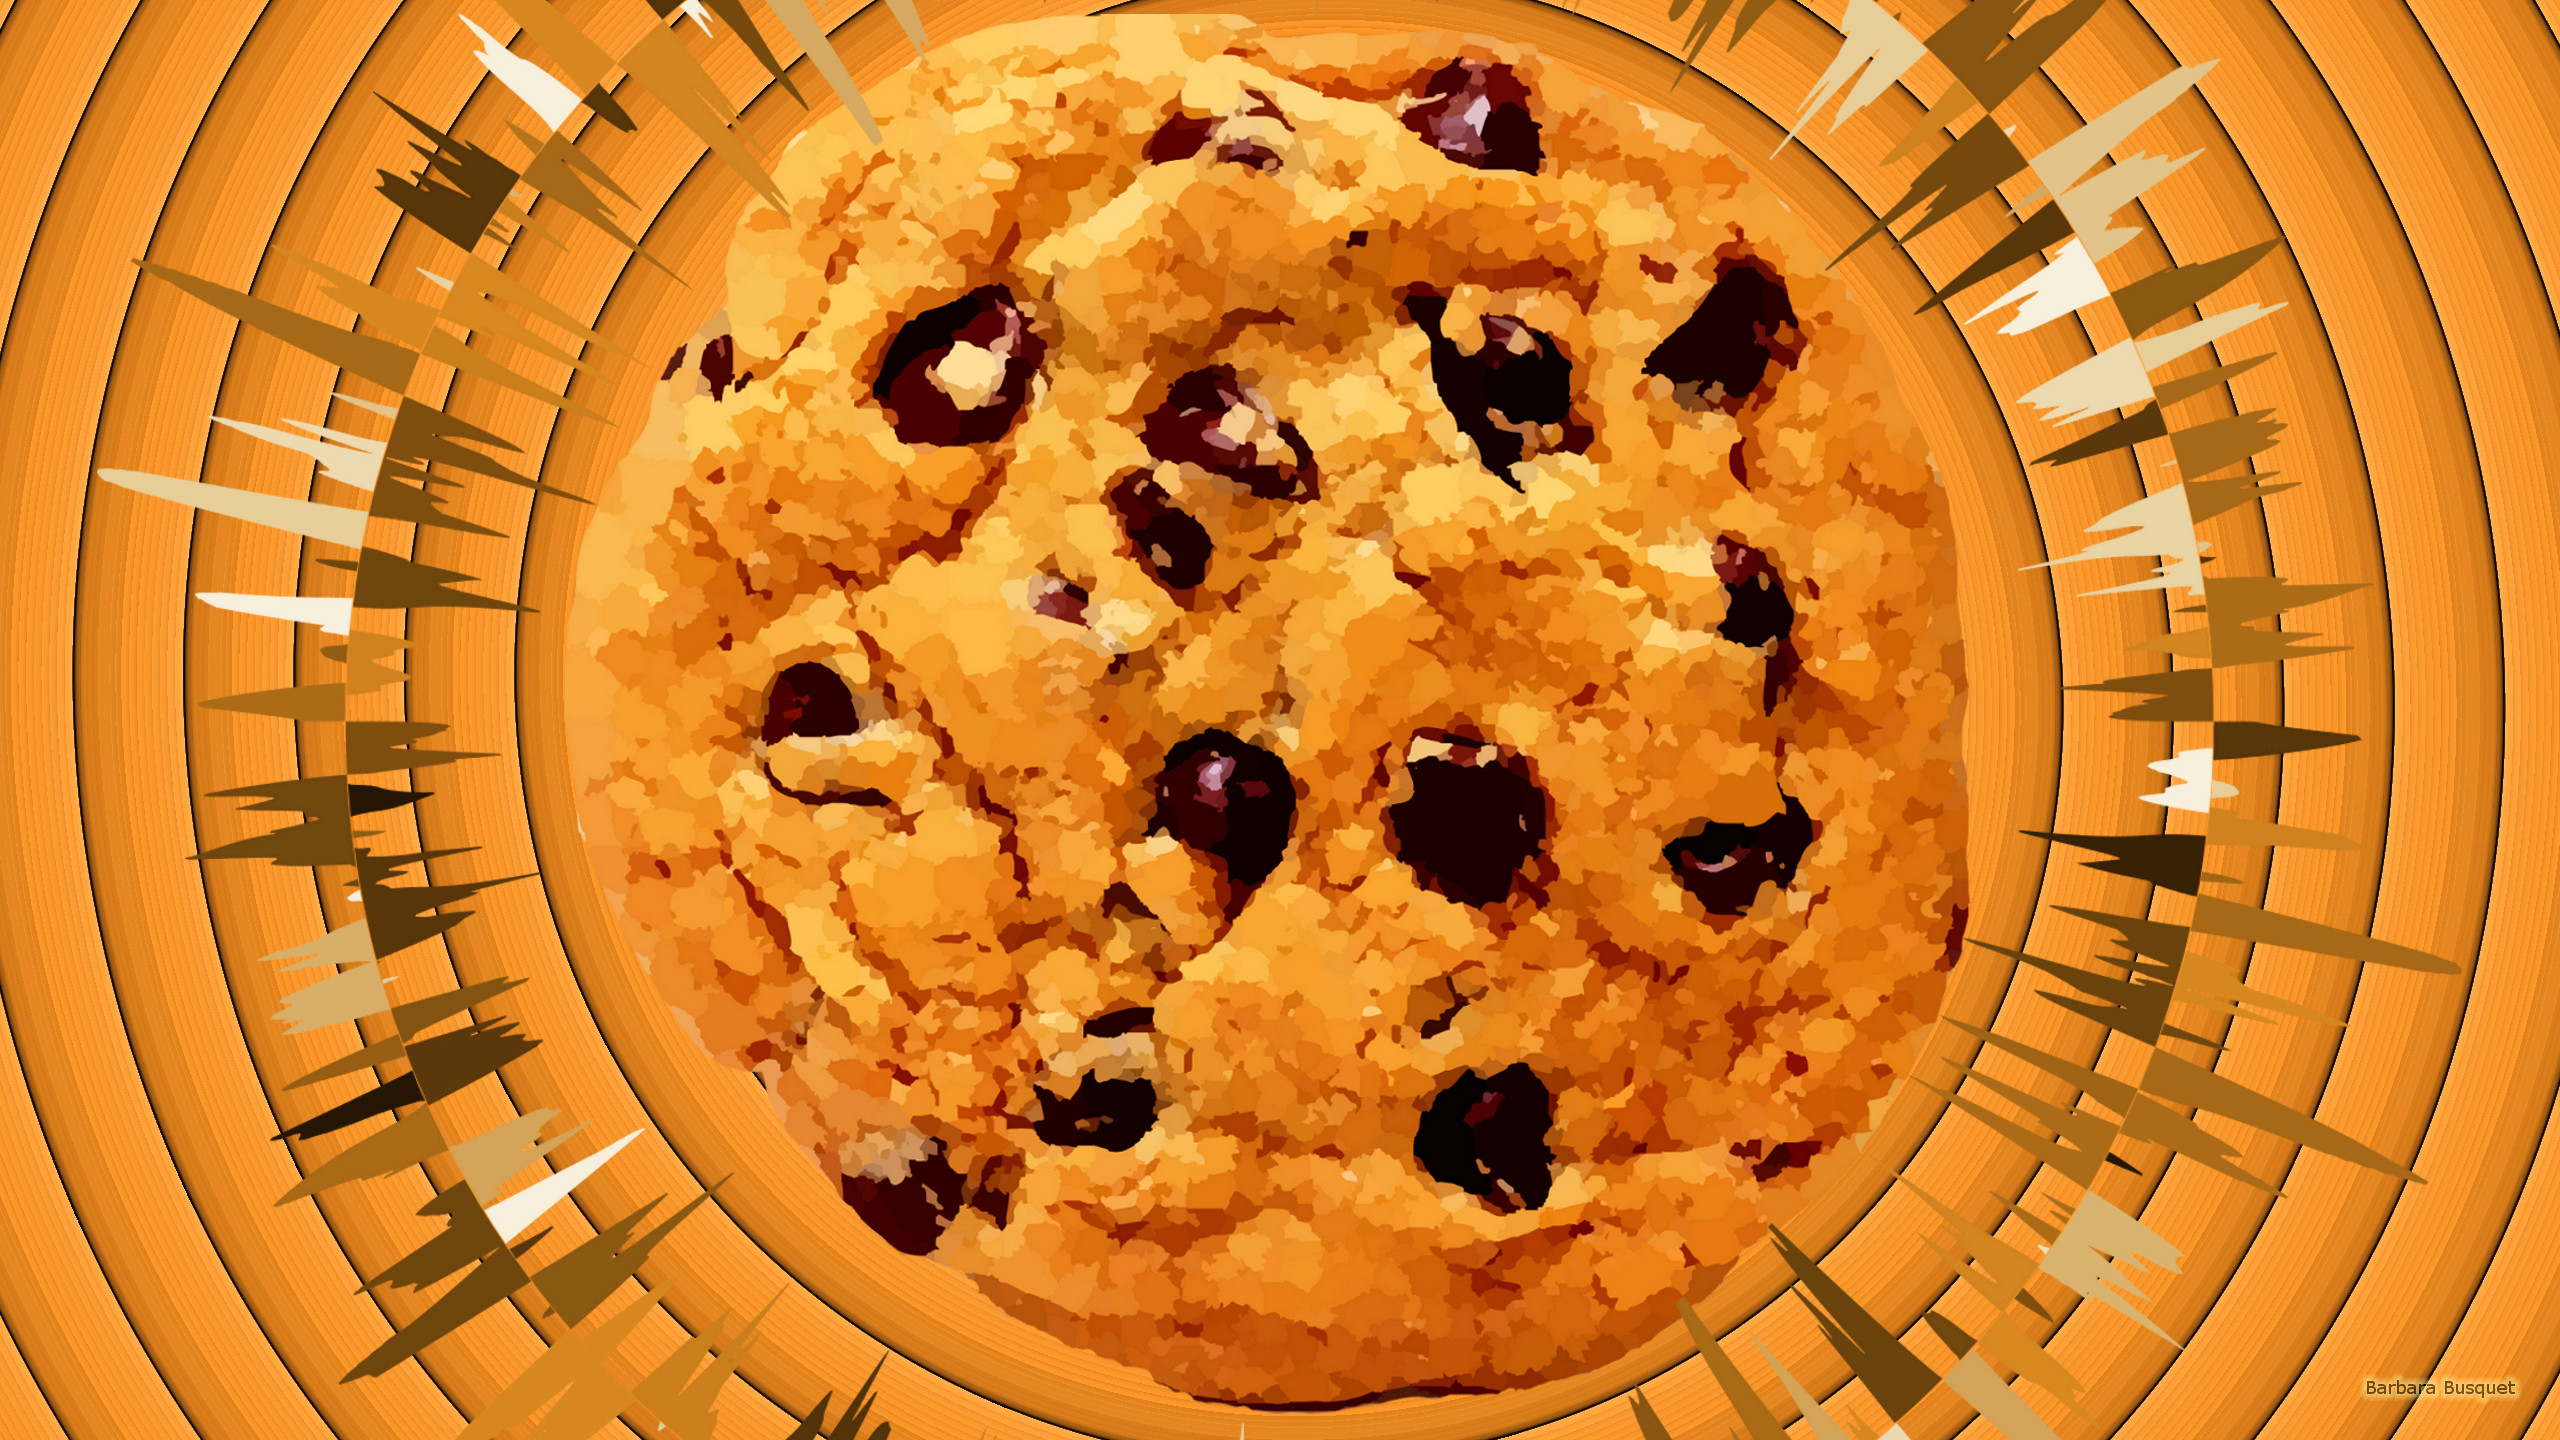 chocolate chip cookie wallpaper - photo #19